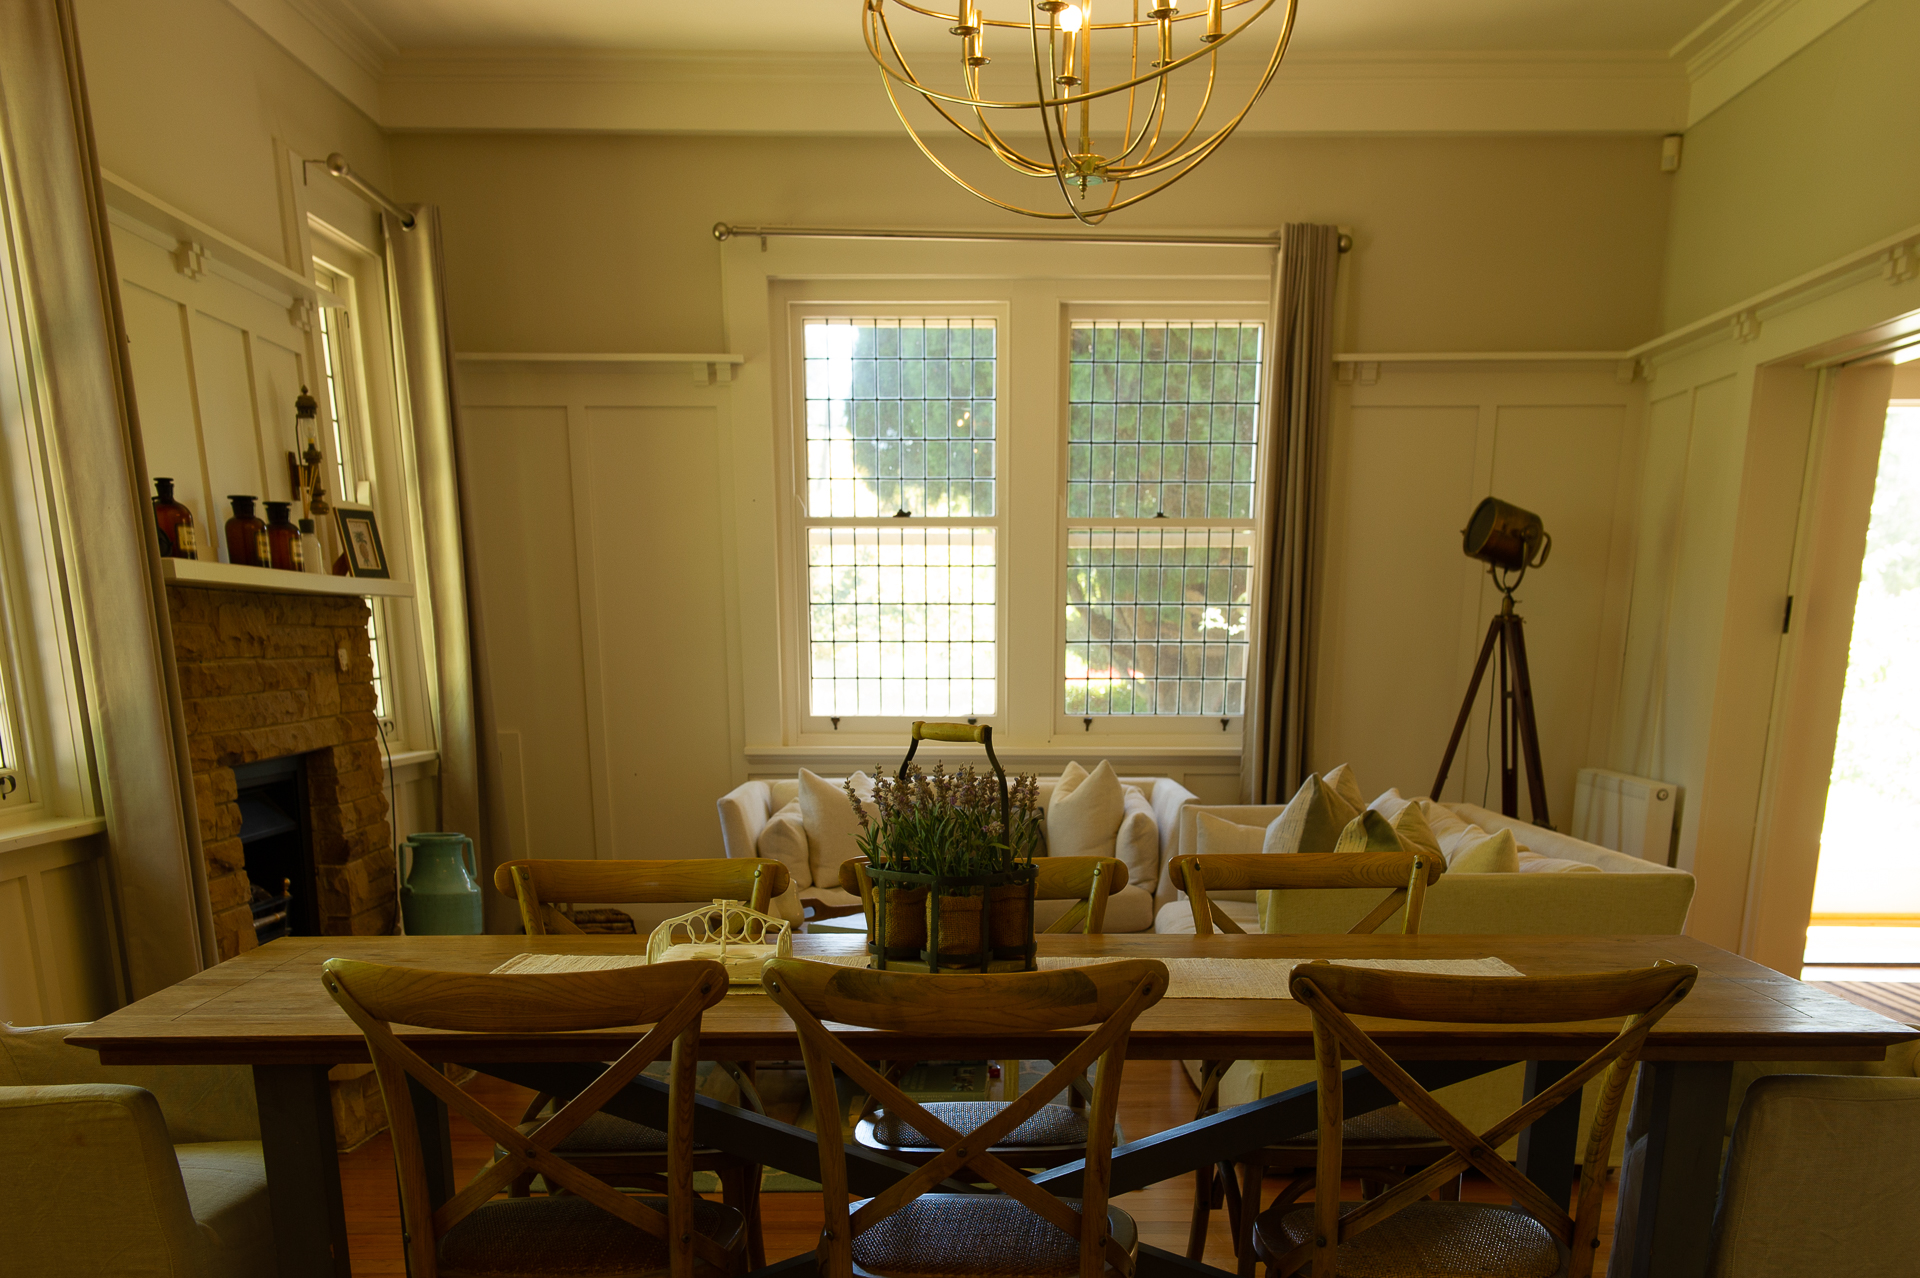 Photo of dining room taken by owner